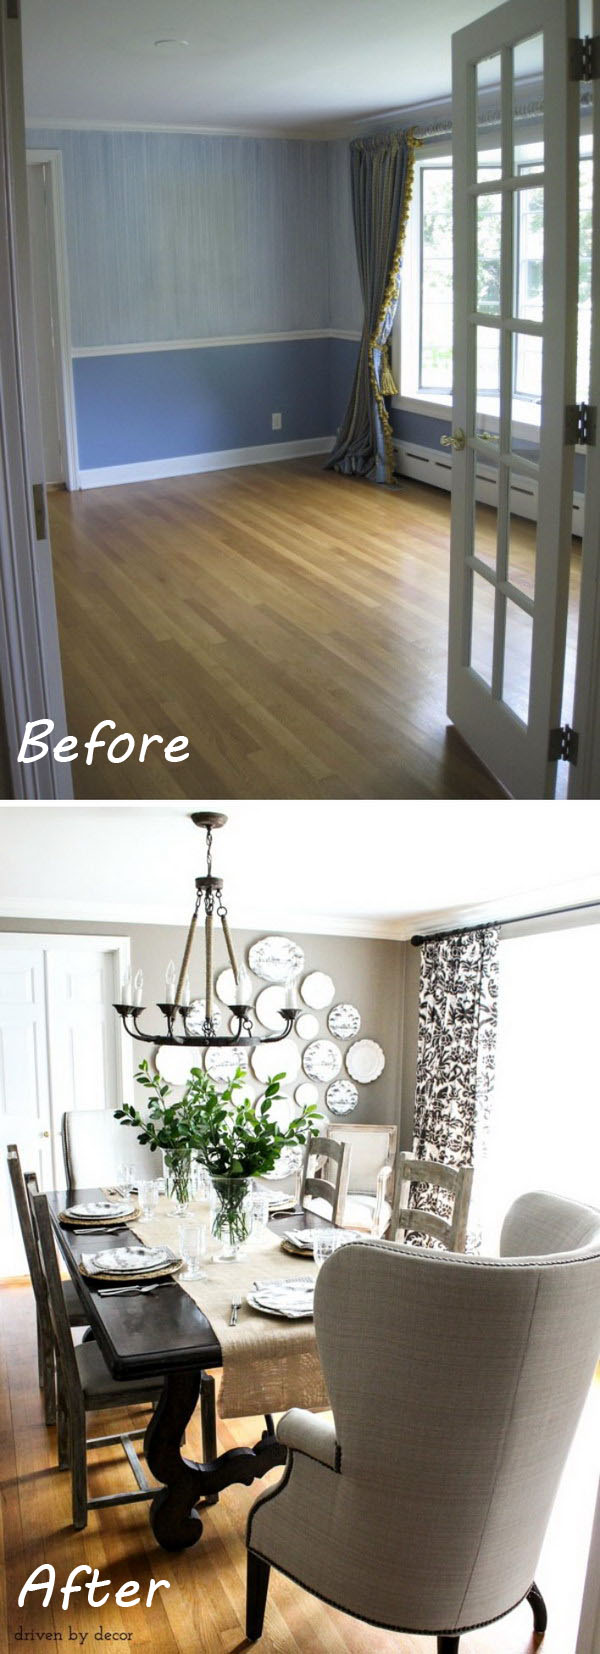 23-24-dining-room-makeover-ideas-tutorials